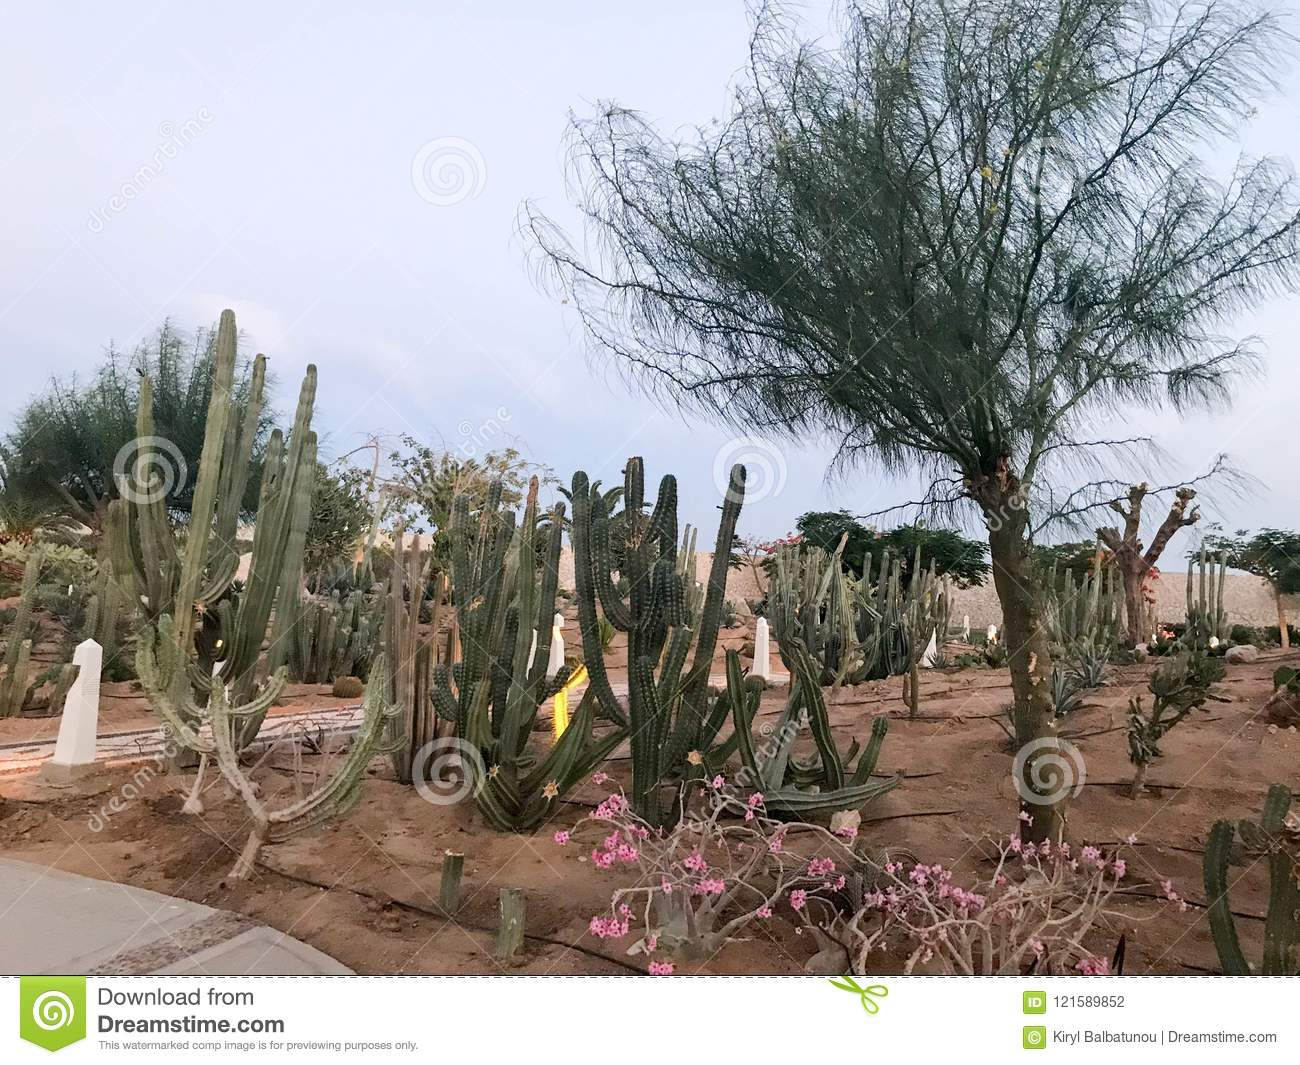 A large beautiful garden of Mexican green prickly cactus, exotic trees, plants, tropical in arid dry warm countries, desert, Egypt